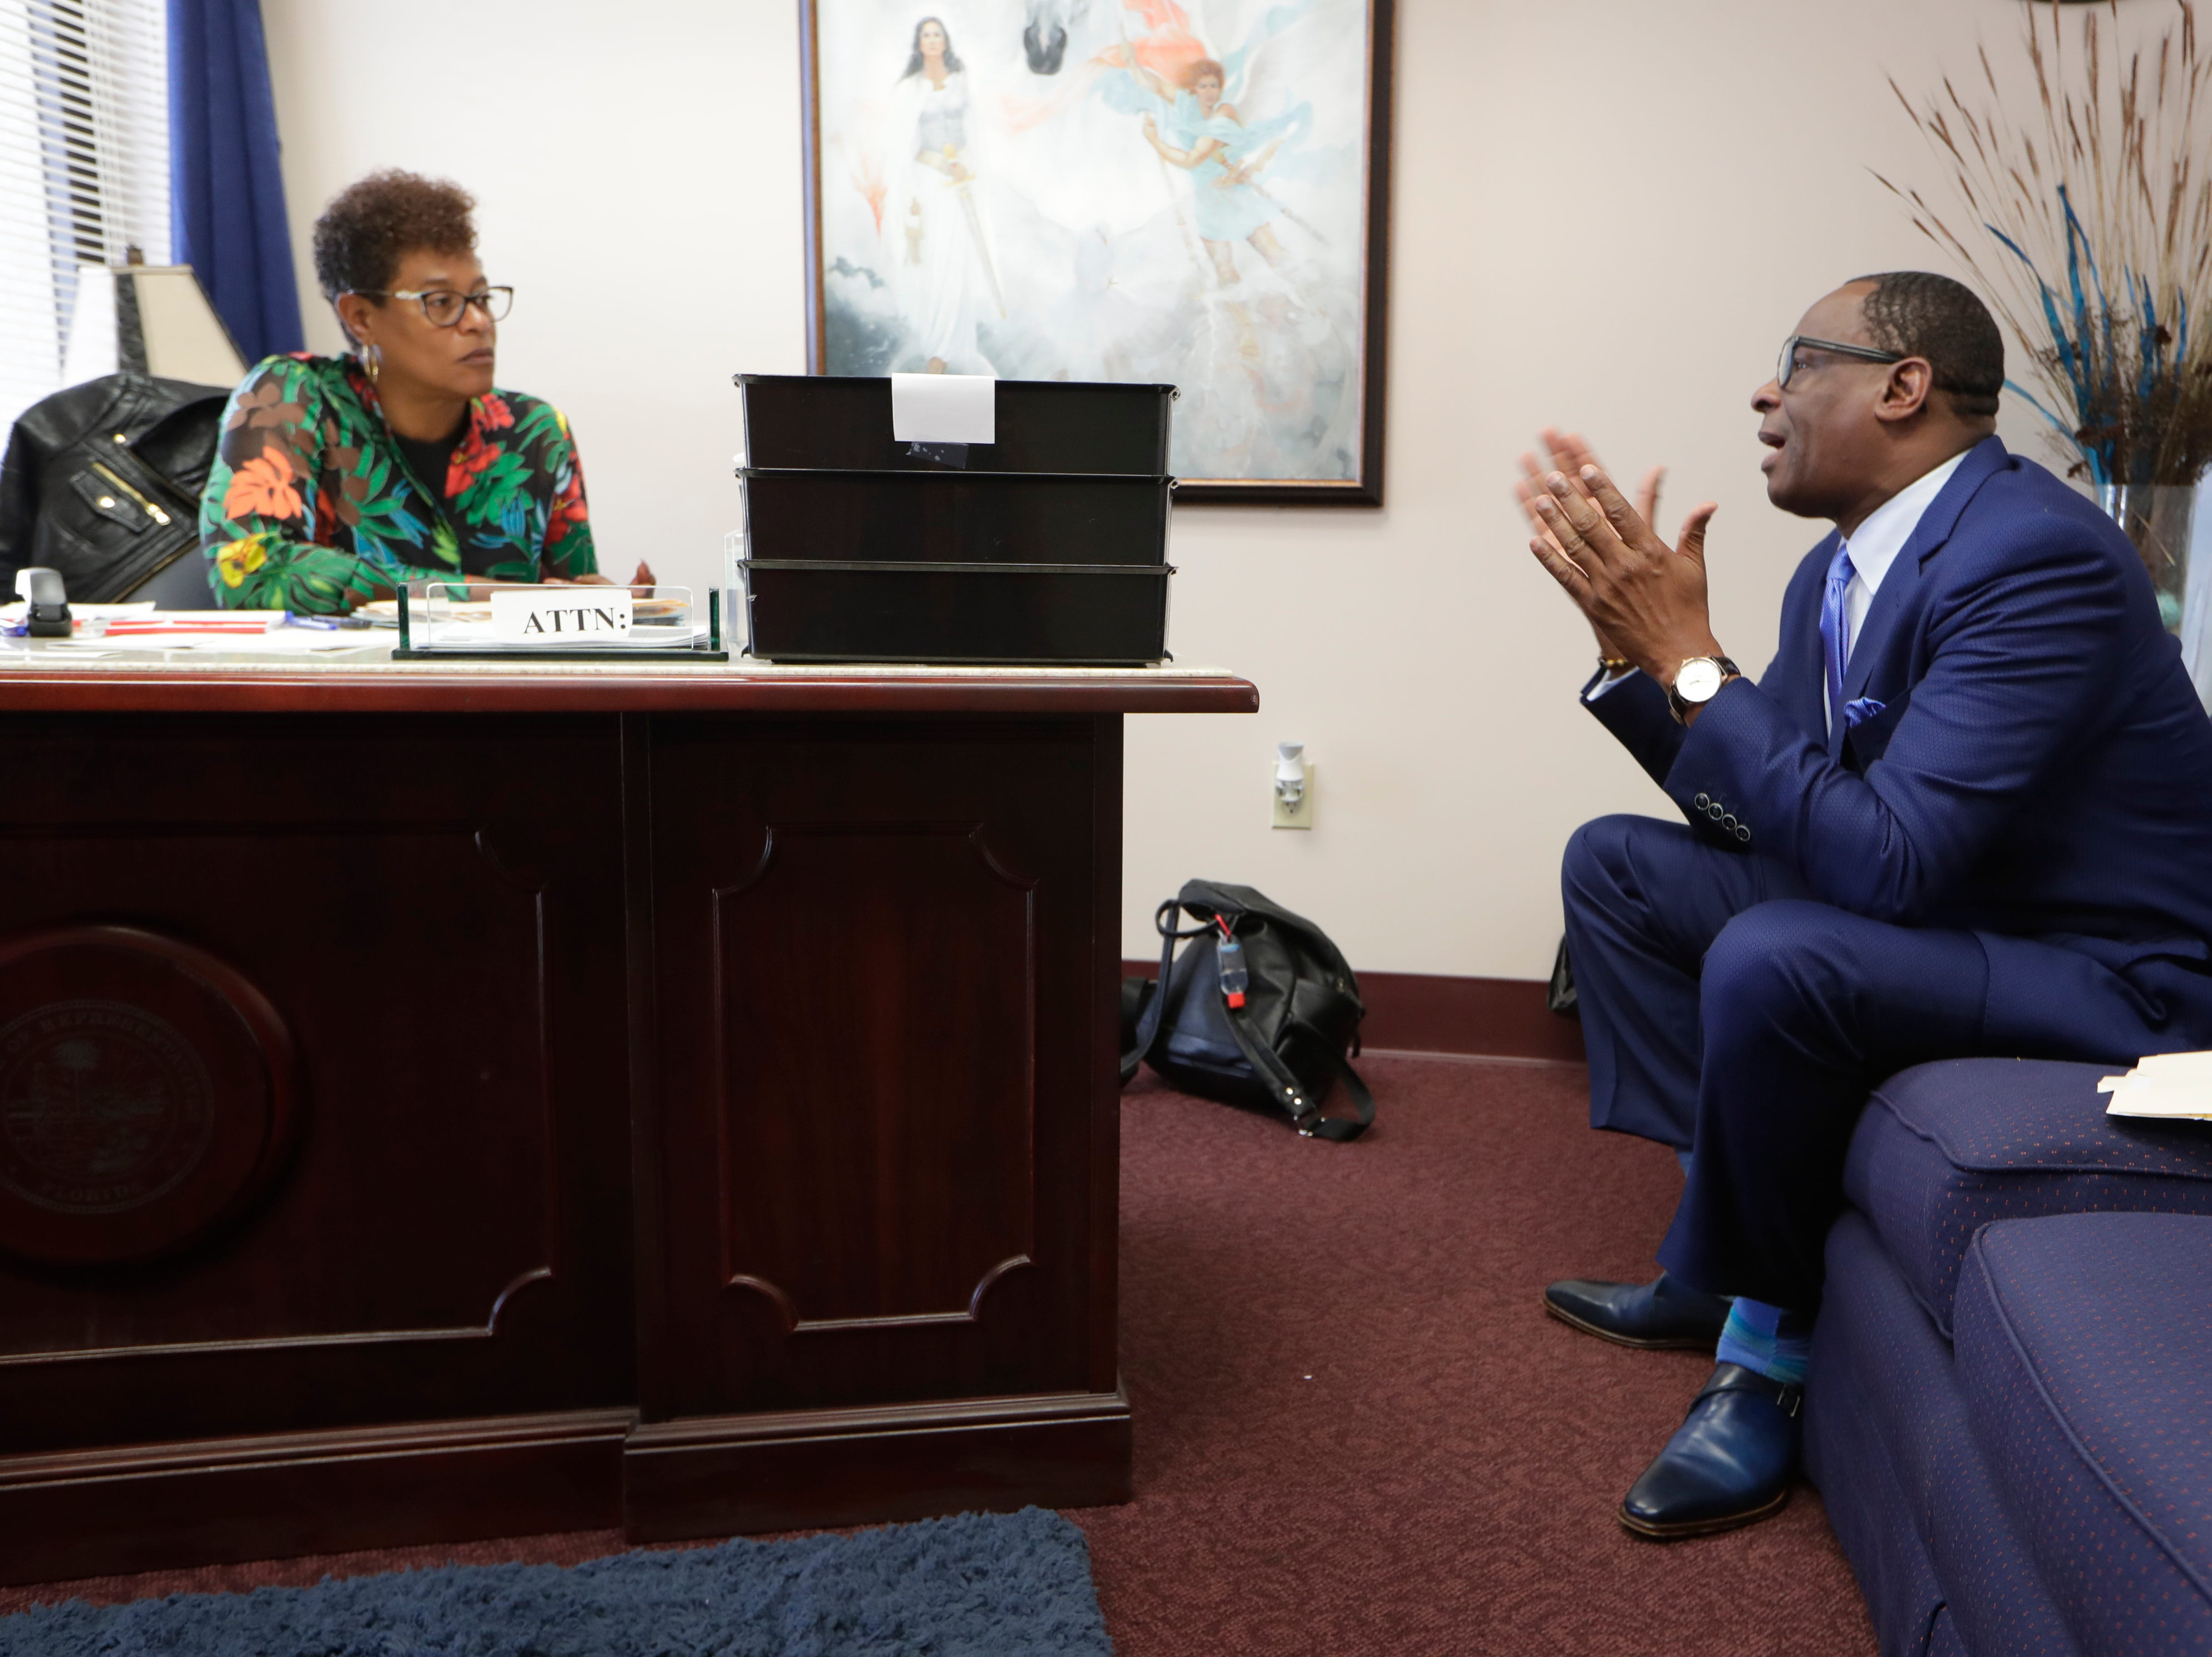 Rev. Greg James meets with Rep. Kimberly Daniels in her office to discuss legislation regarding Amendment 4, restoring voting rights to those with felonies in Florida. Rev. James was one of over 500 Florida citizens with restored voting rights that visited the Capitol Tuesday to rally and talk with legislators.